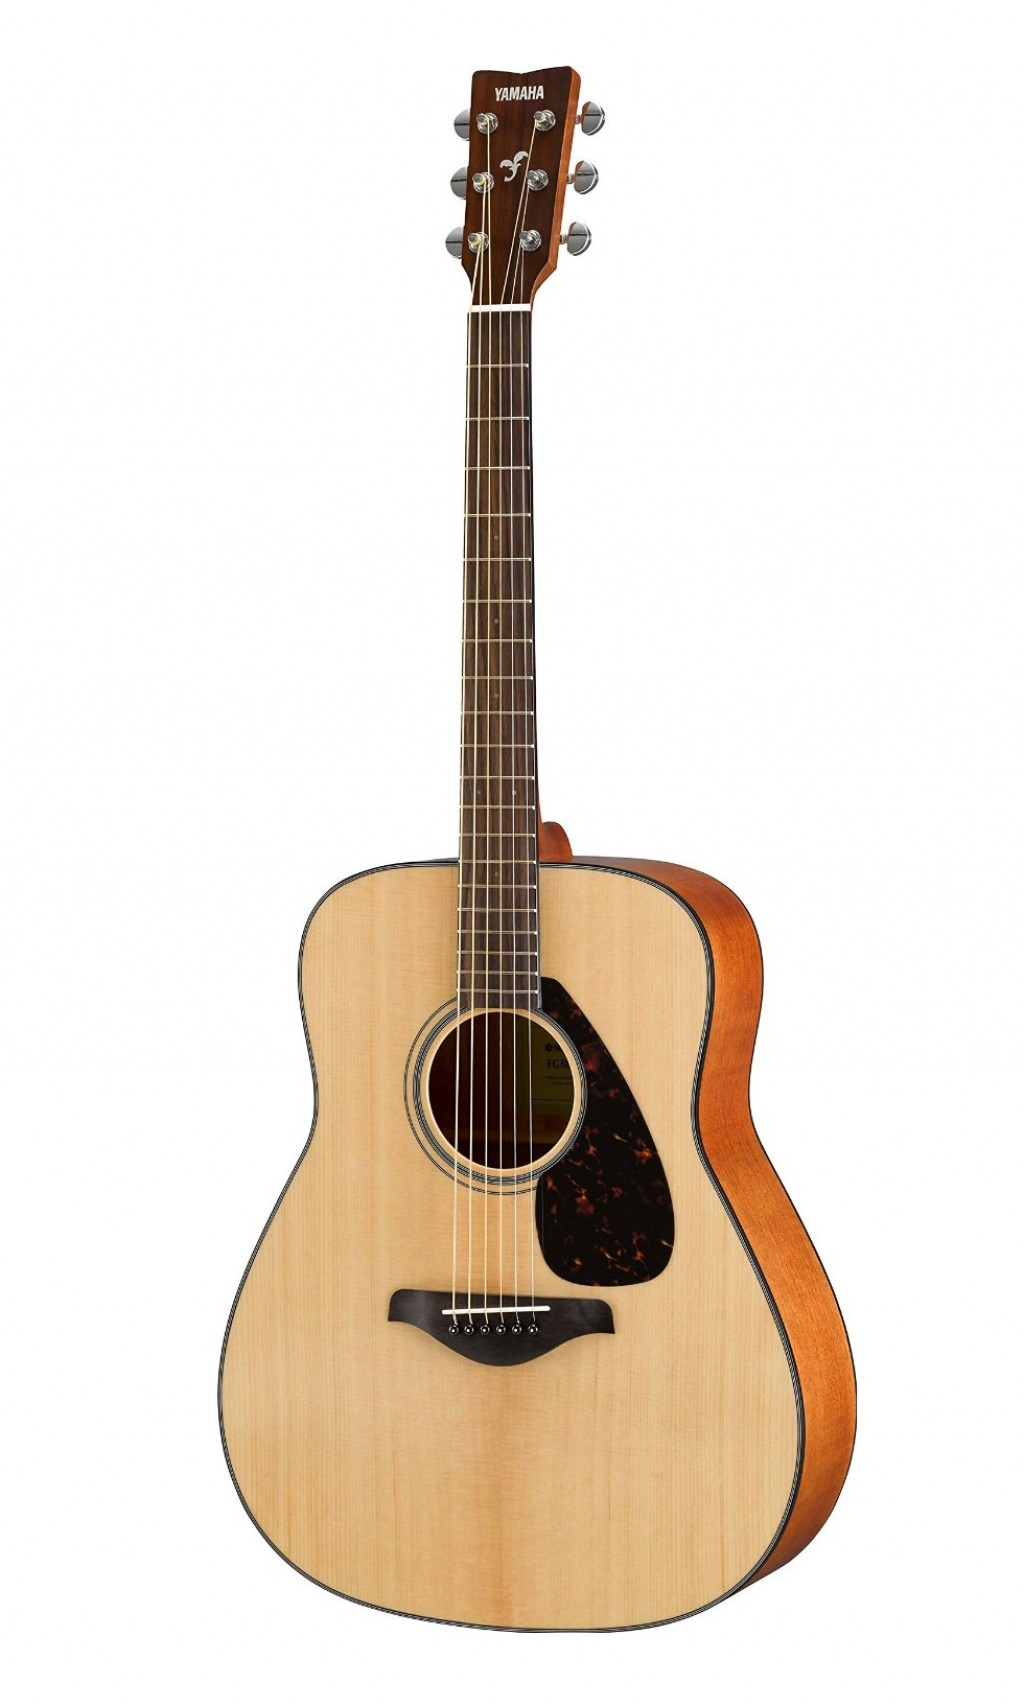 Best yamaha acoustic guitars for beginners spinditty for Yamaha classic guitar